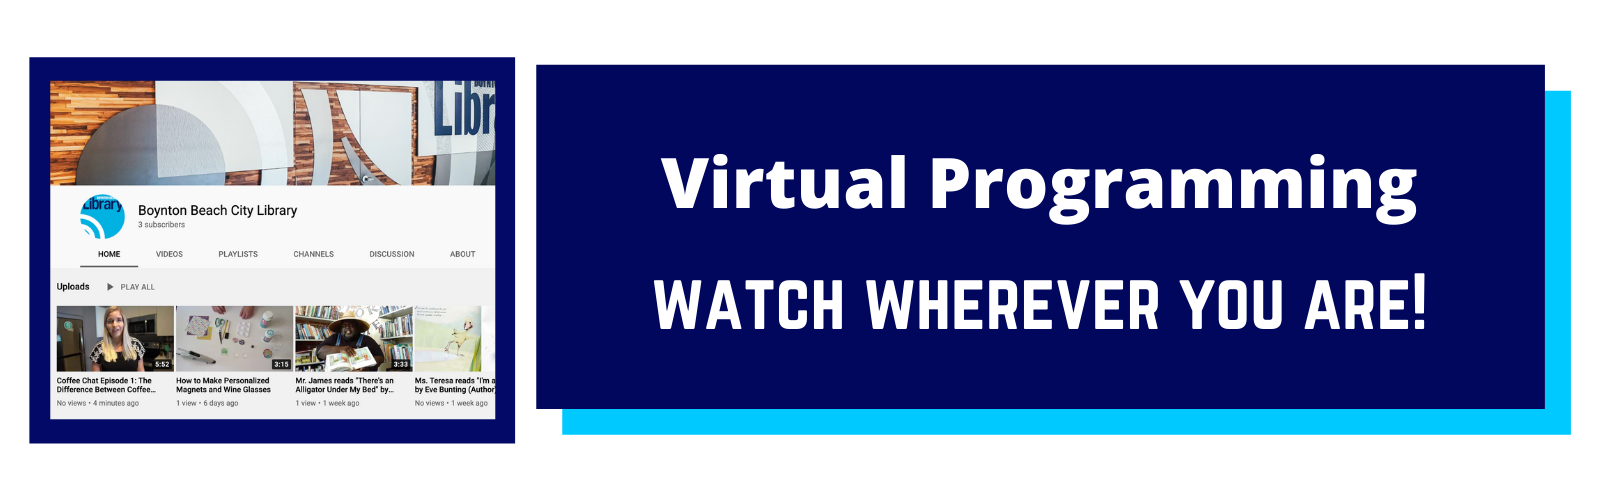 Virtual Programming, watch wherever you are.